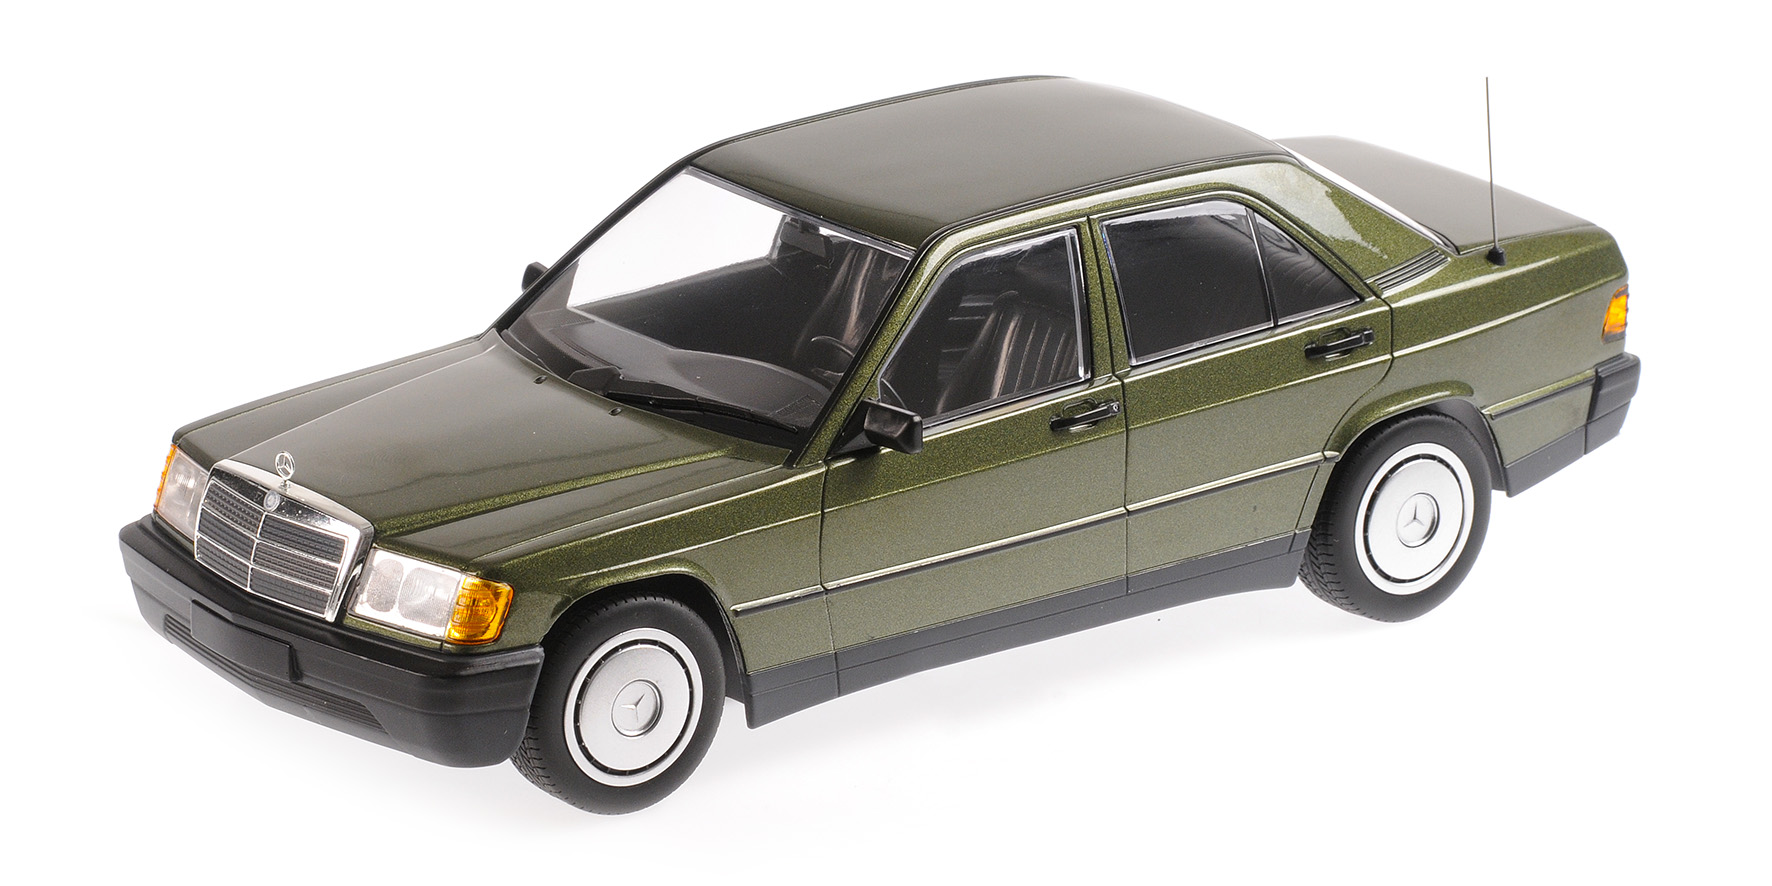 Mercedes-Benz 190E (W201) 1982 Groen Metallic